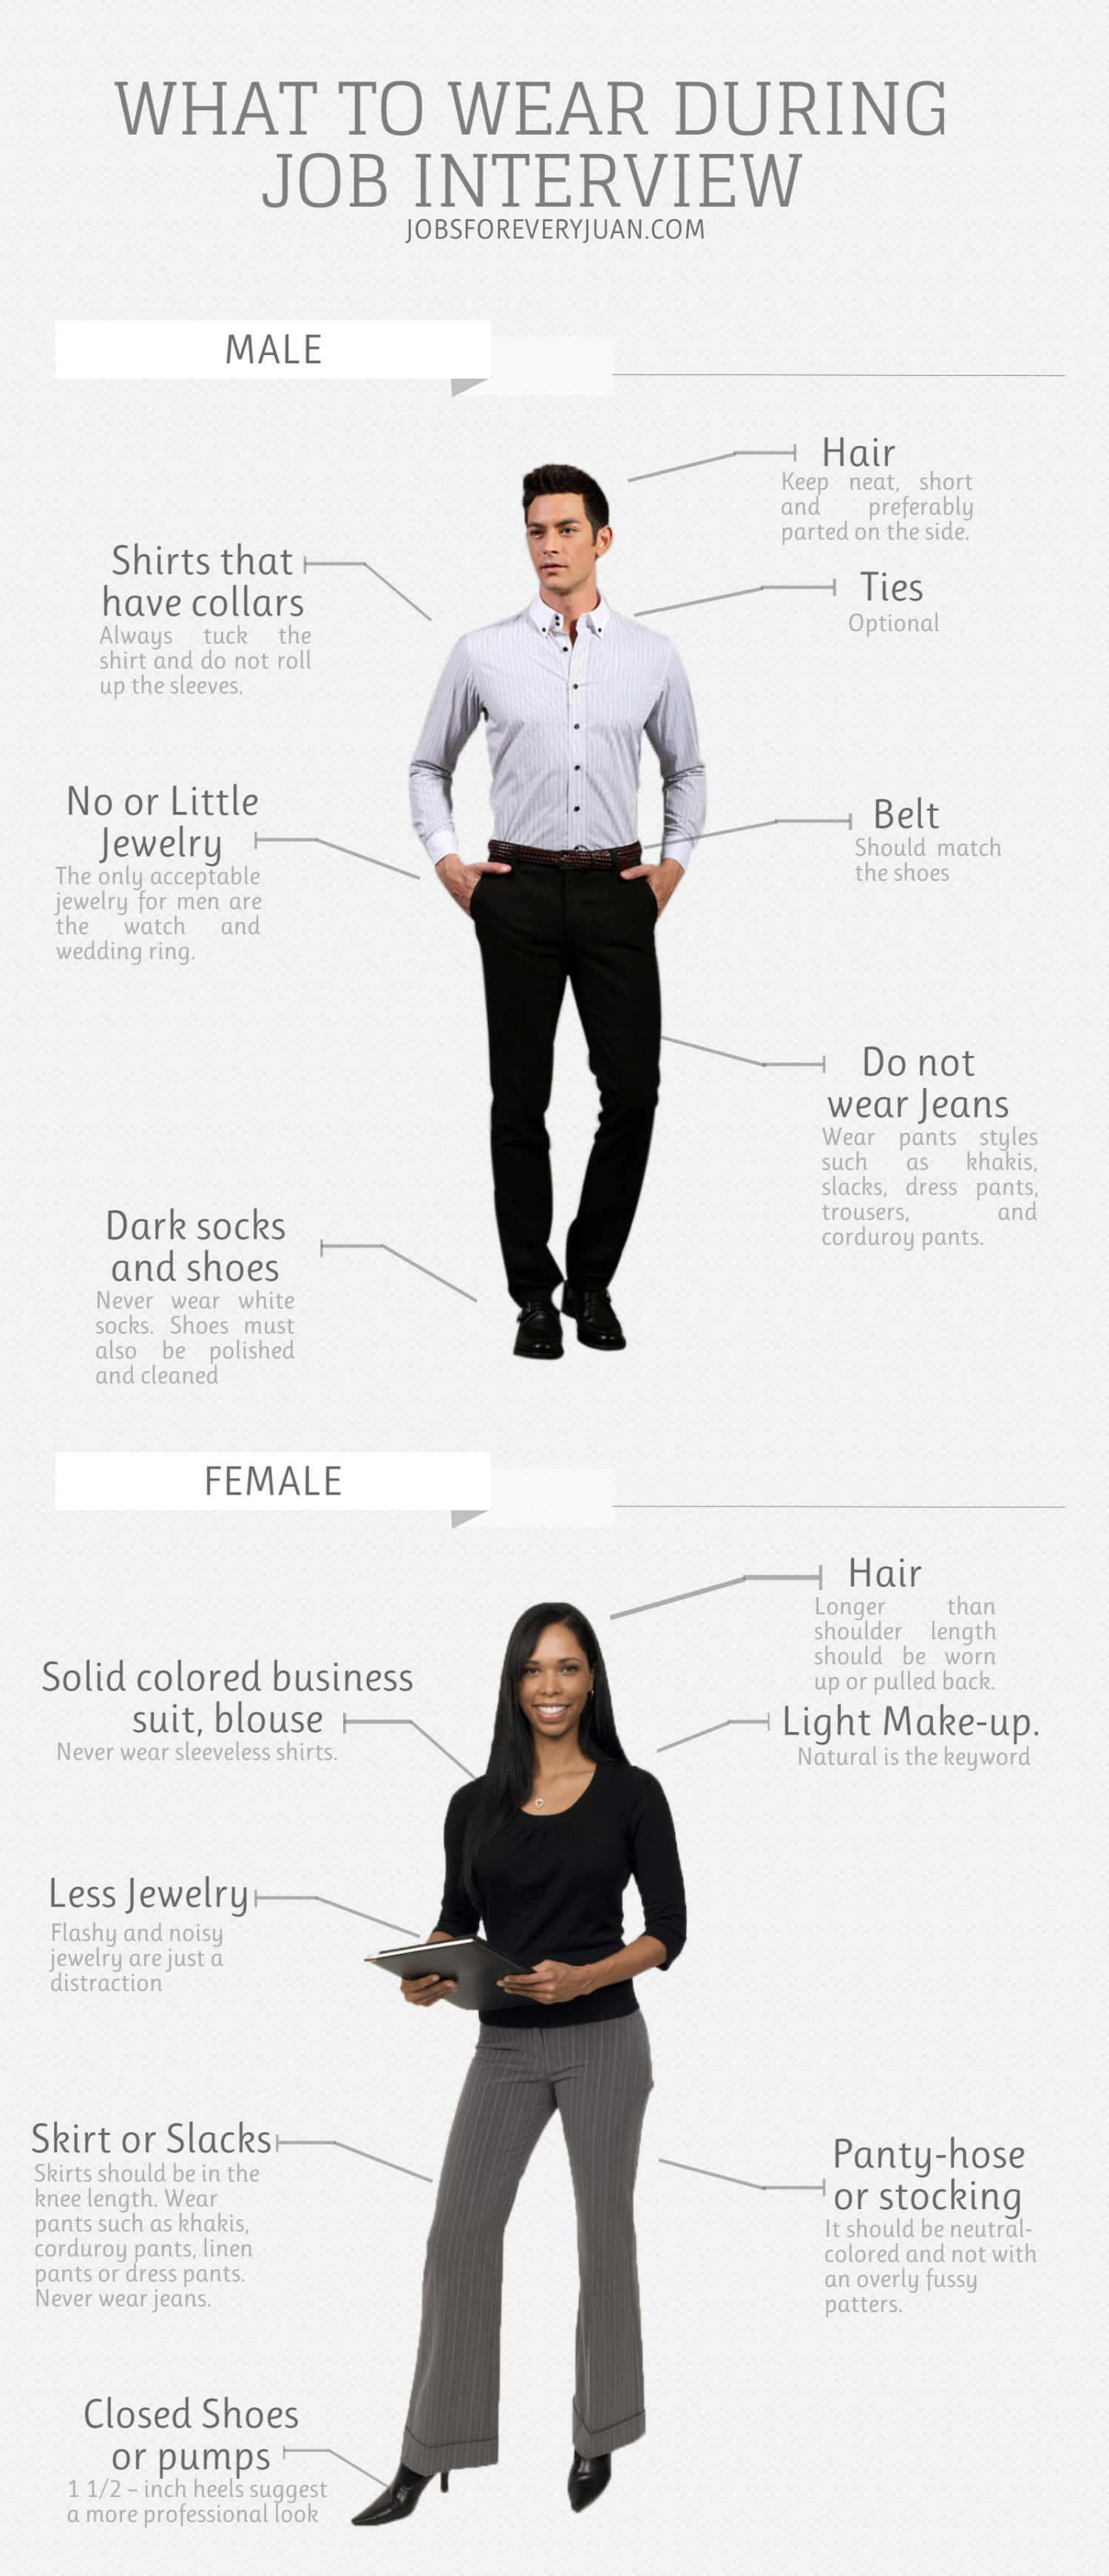 job-searching-tip-what-to-wear-during-job-interview